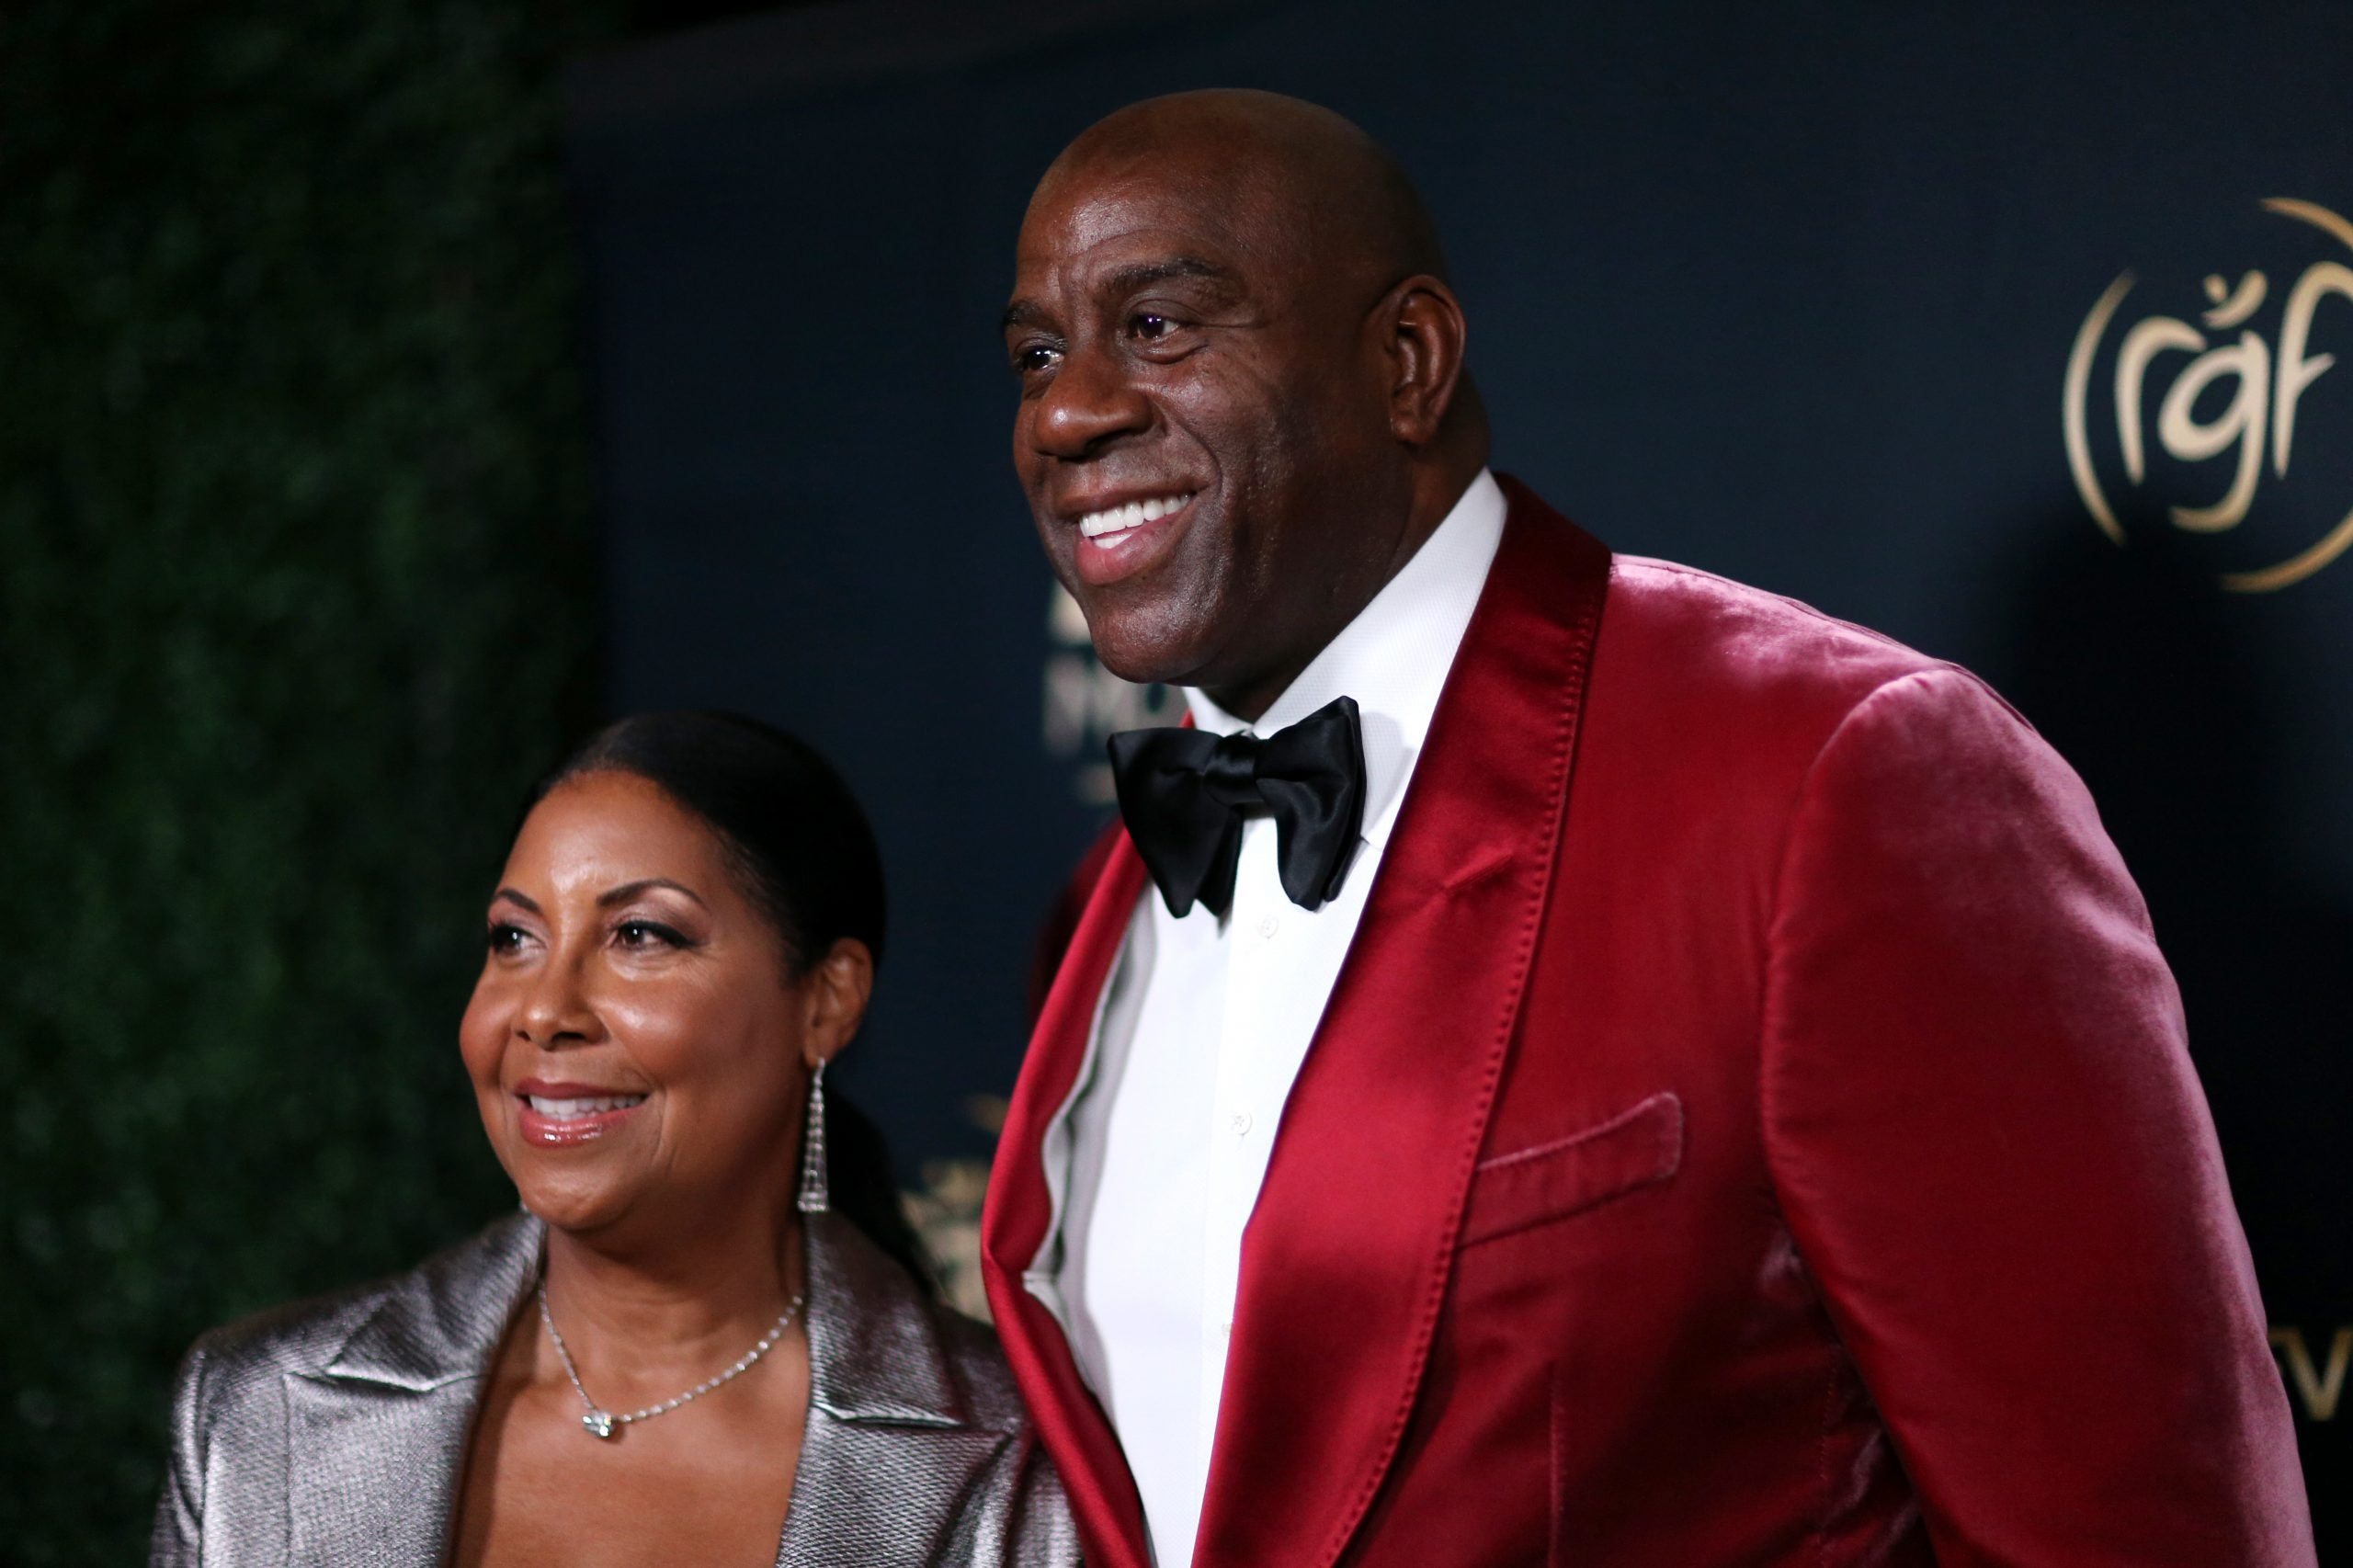 Magic Johnson Calls His Wife Cookie 'A Gift From God' On Their 29th Wedding Anniversary